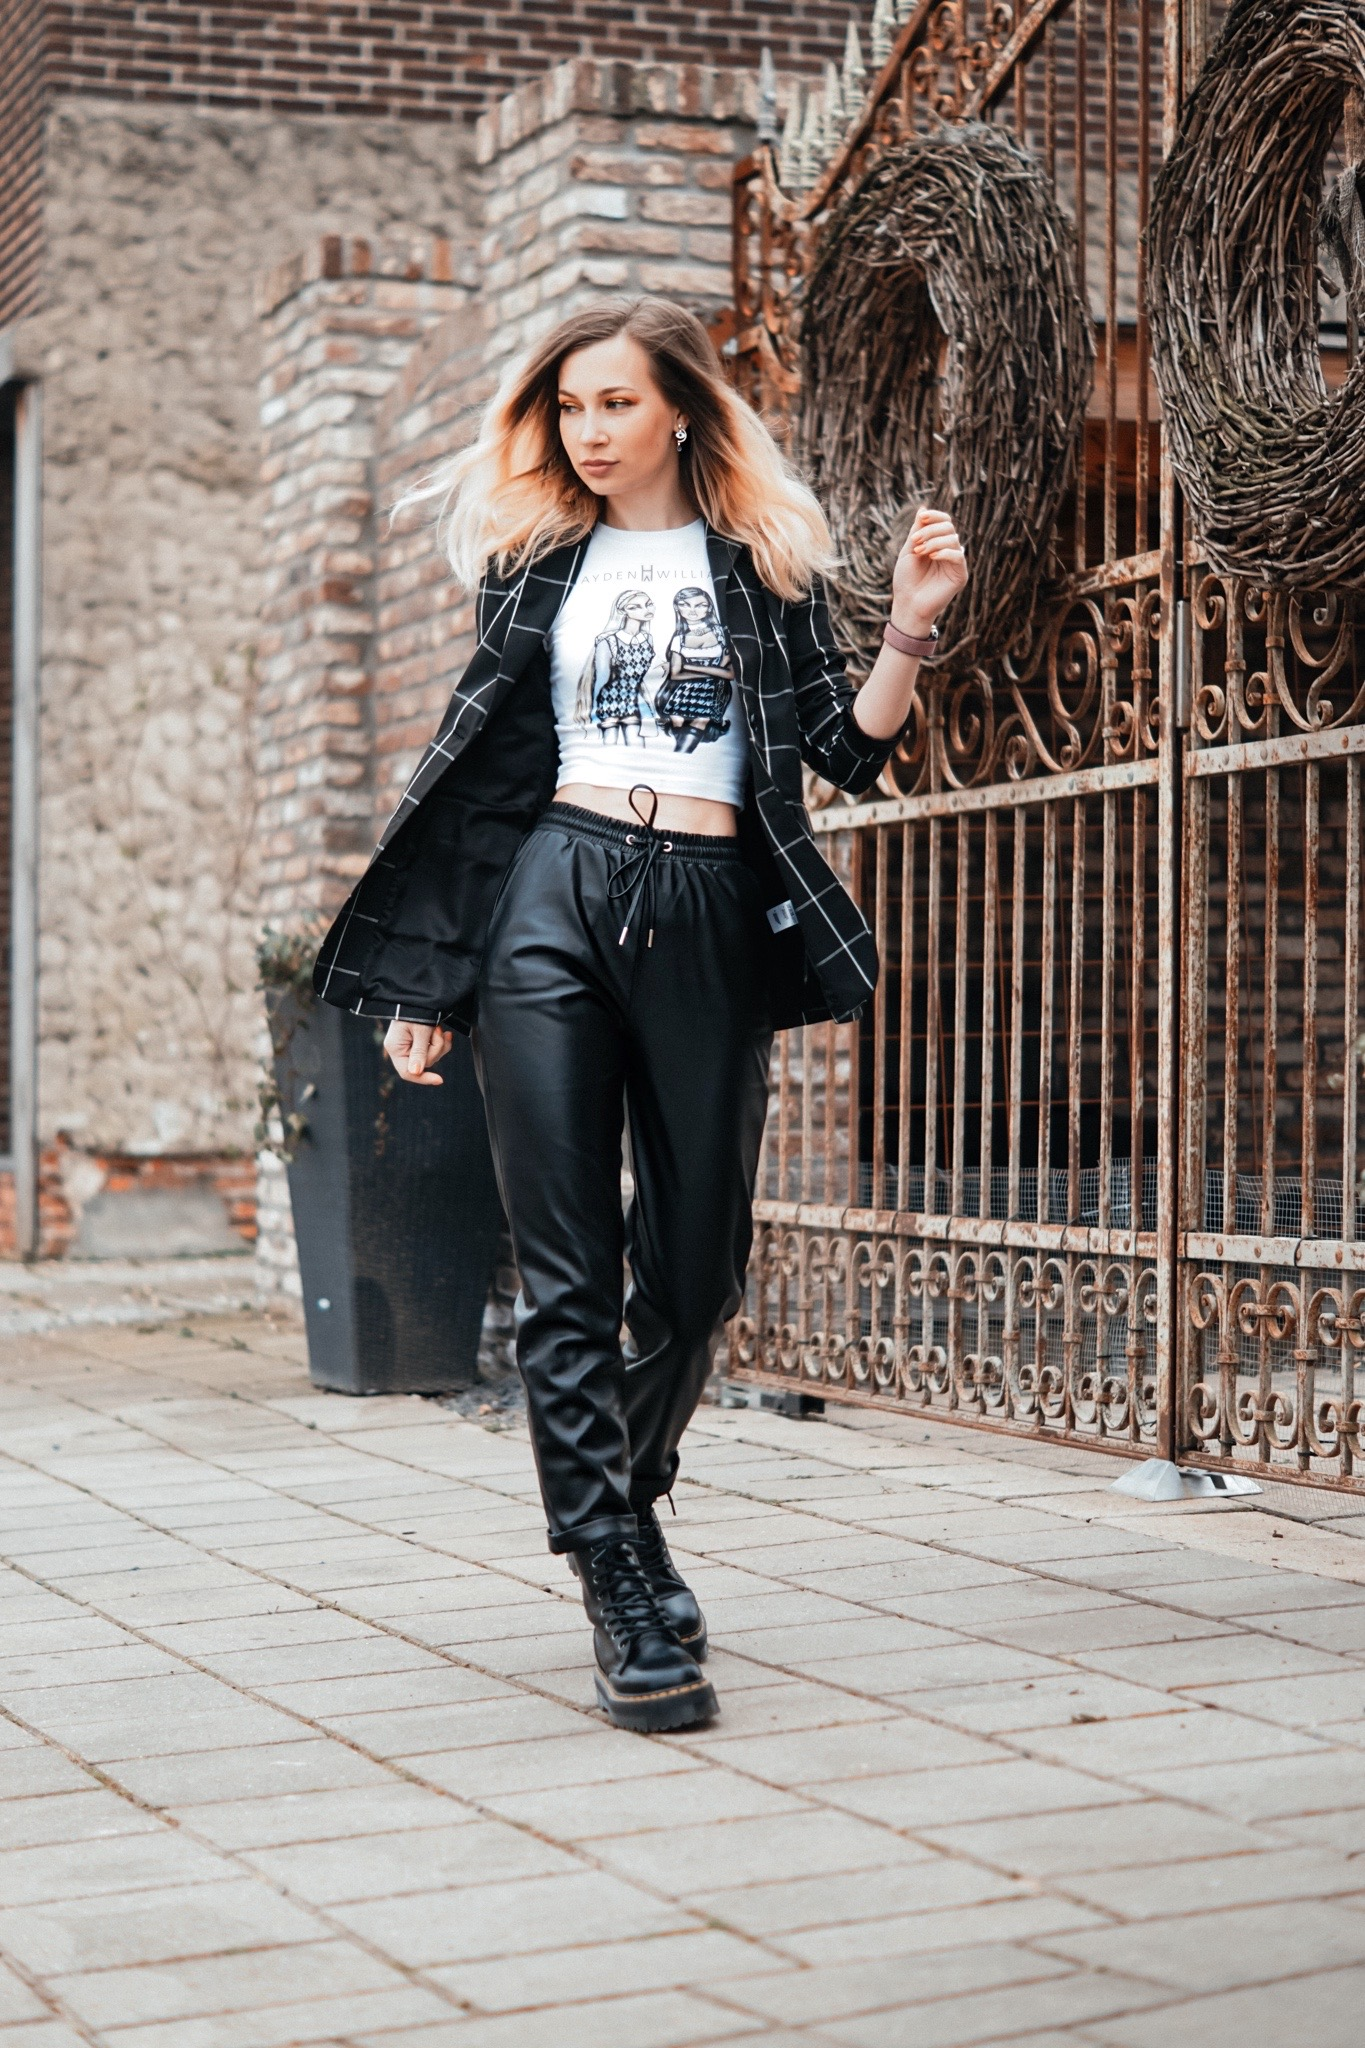 dbkstylez_leather_pants_jogging_pnats_streetstyle_plaid_dr.martens_jadon